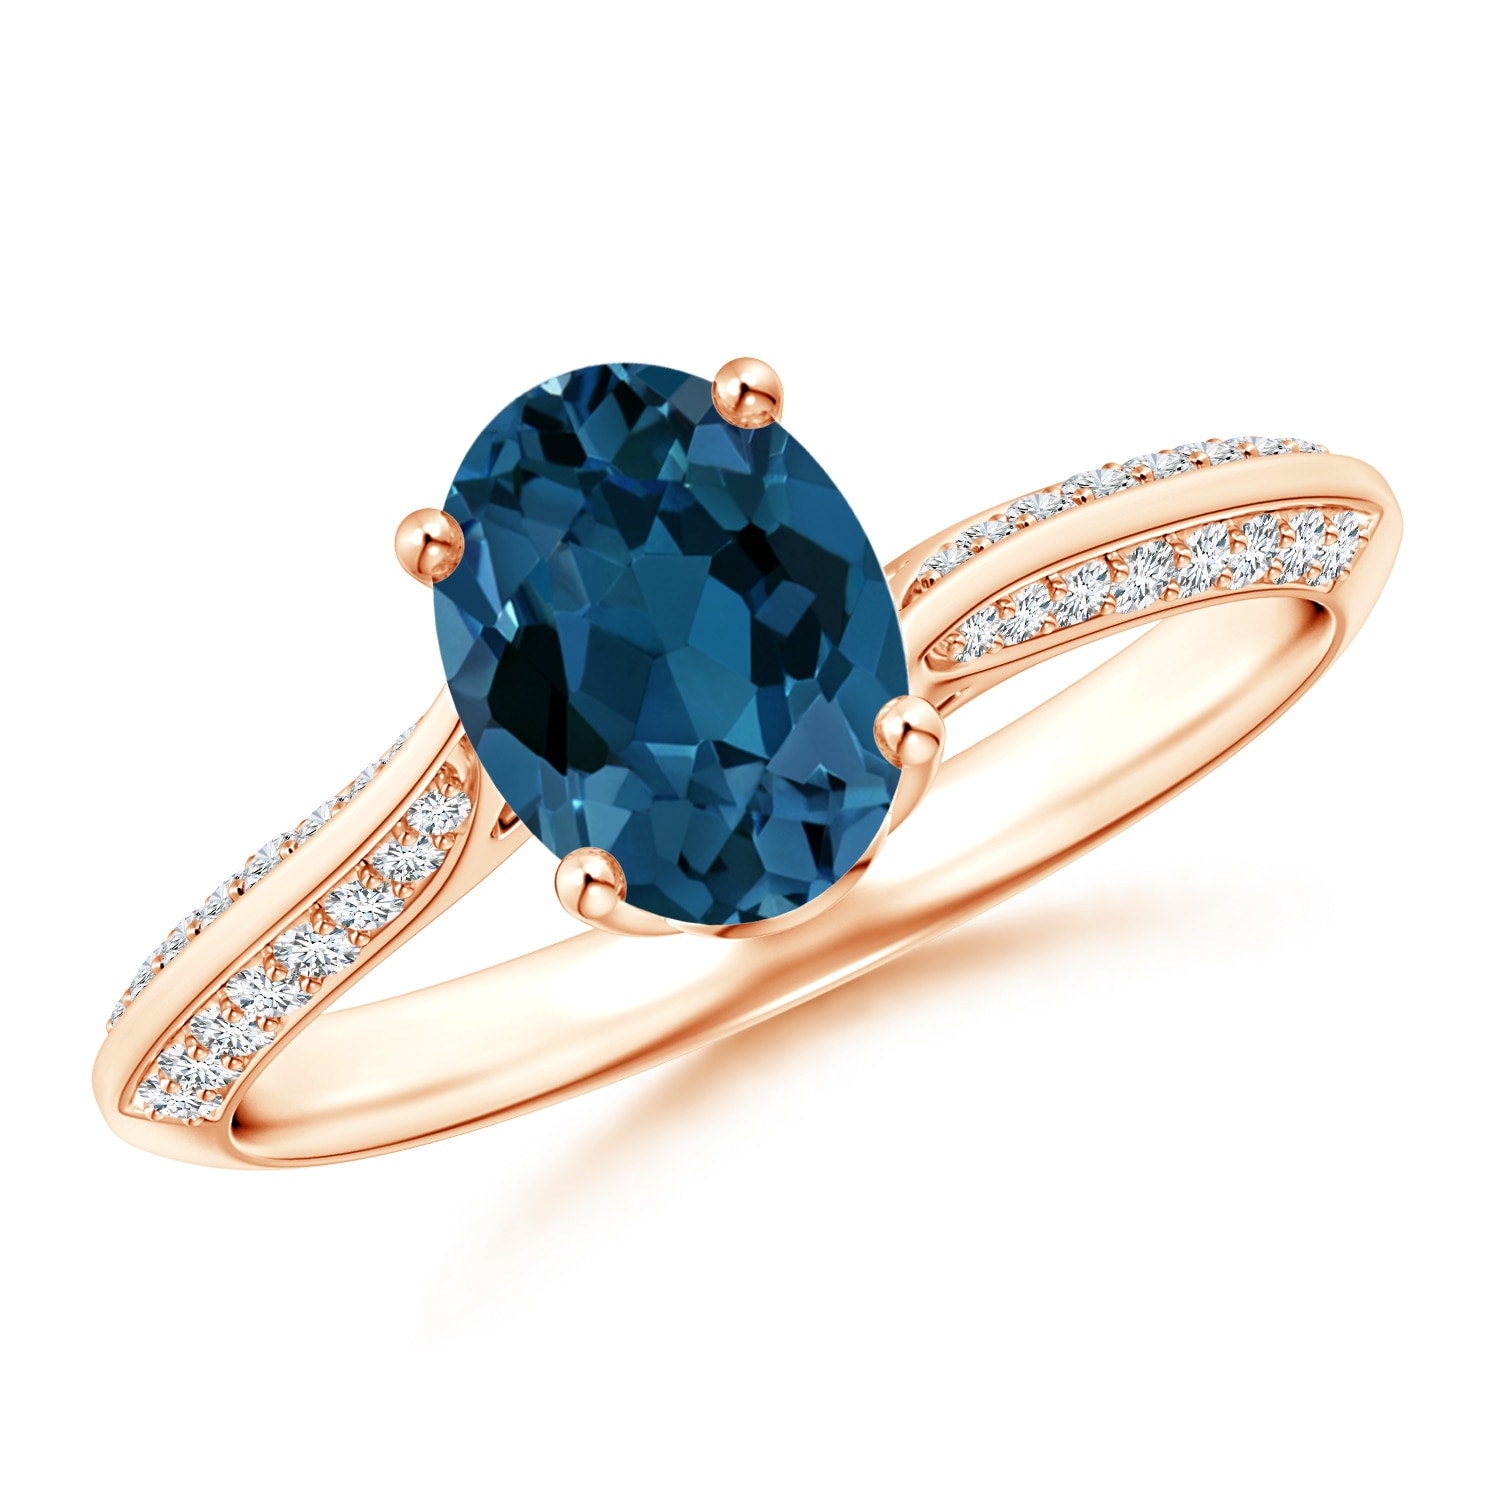 Oval London Blue Topaz Bypass Ring with Diamond Accents - Angara.com